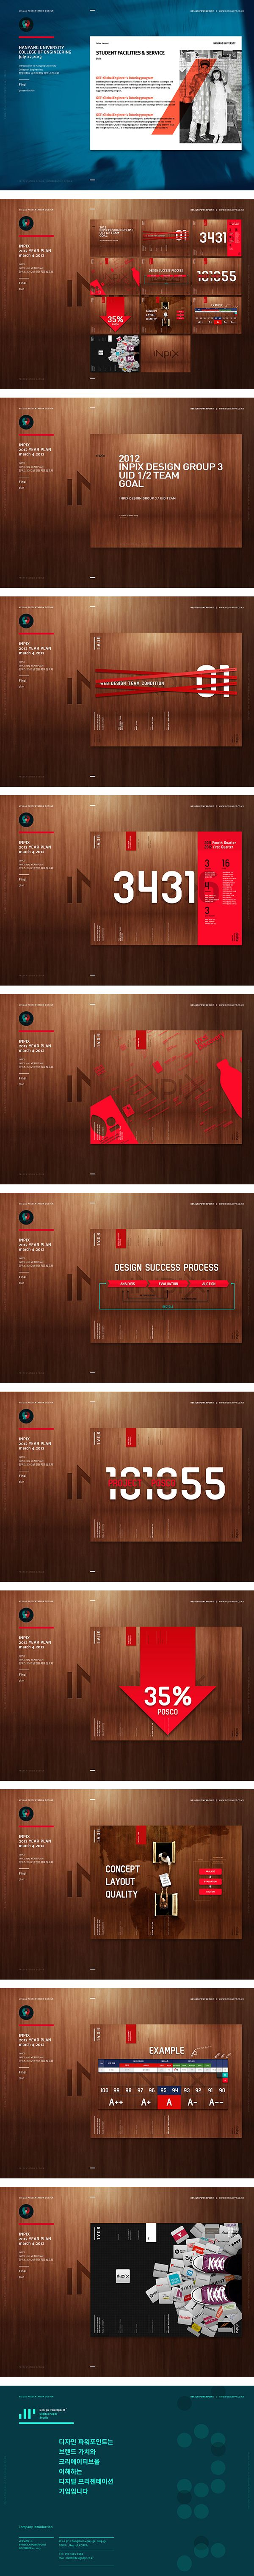 Design Powerpoint Introduction 2013! by young sun hong, via Behance